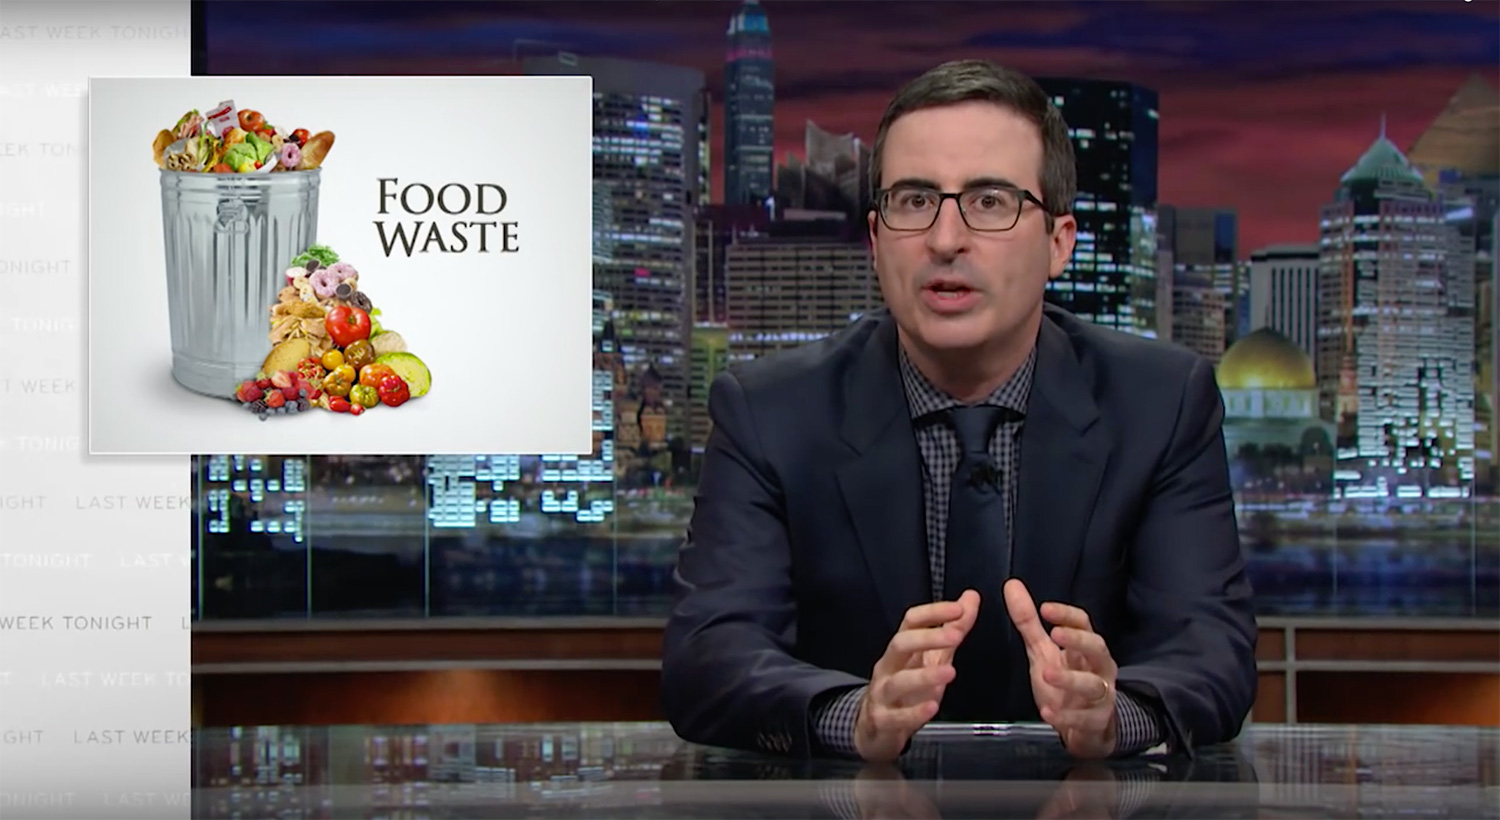 Last Week Tonight With John Oliver: Food Waste